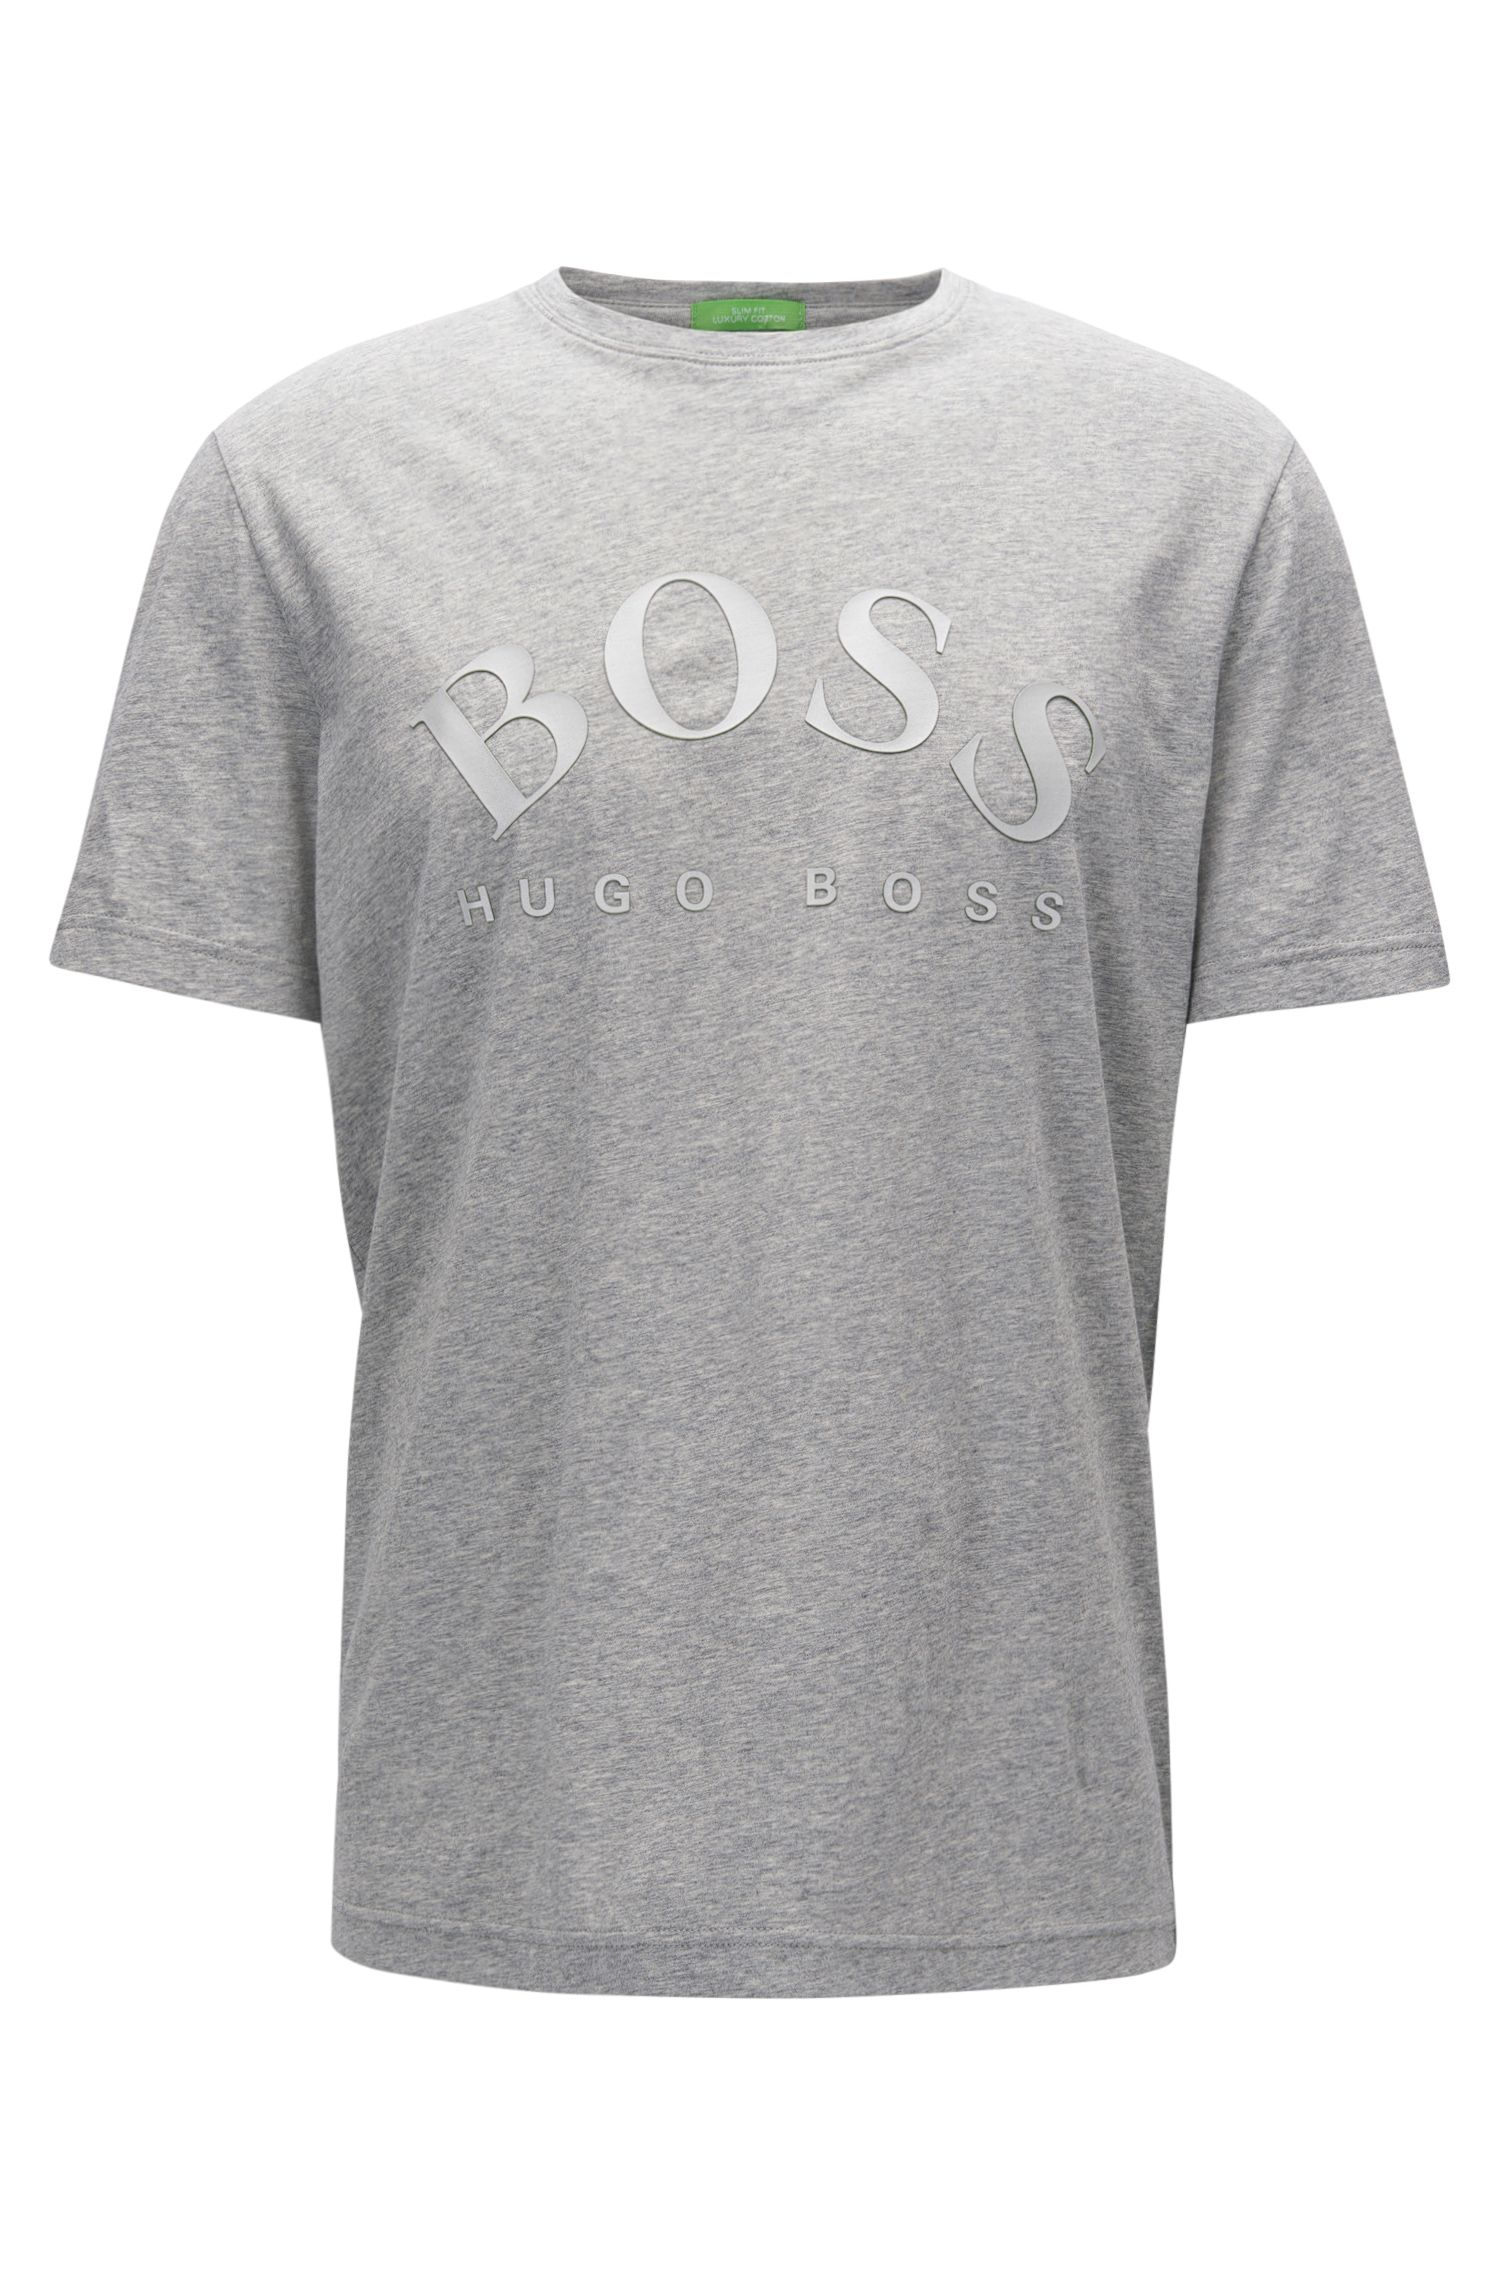 T-shirt slim fit in morbido cotone con logo